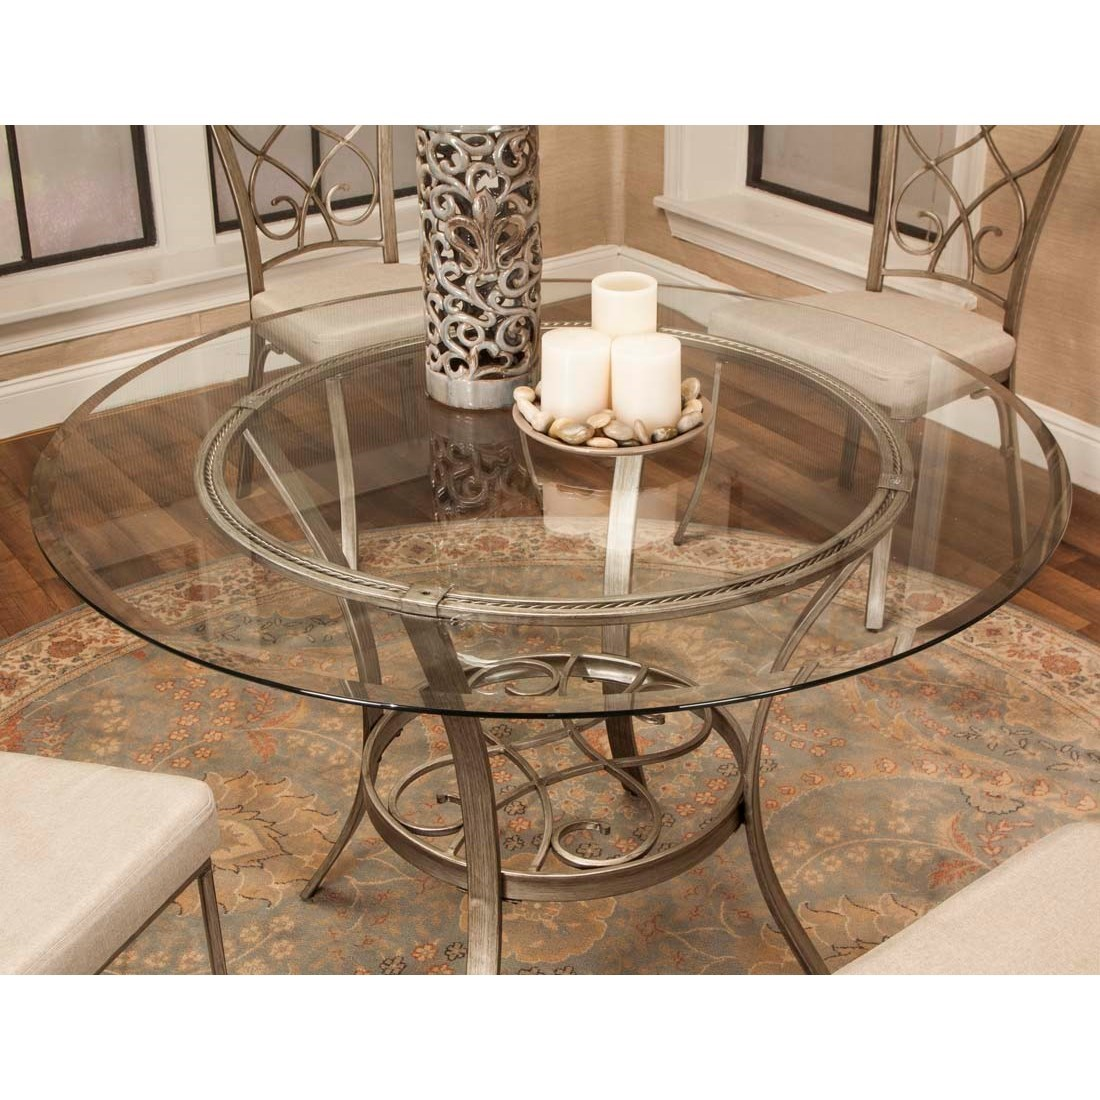 Asti Round Dining Table by Cramco, Inc at Lapeer Furniture & Mattress Center